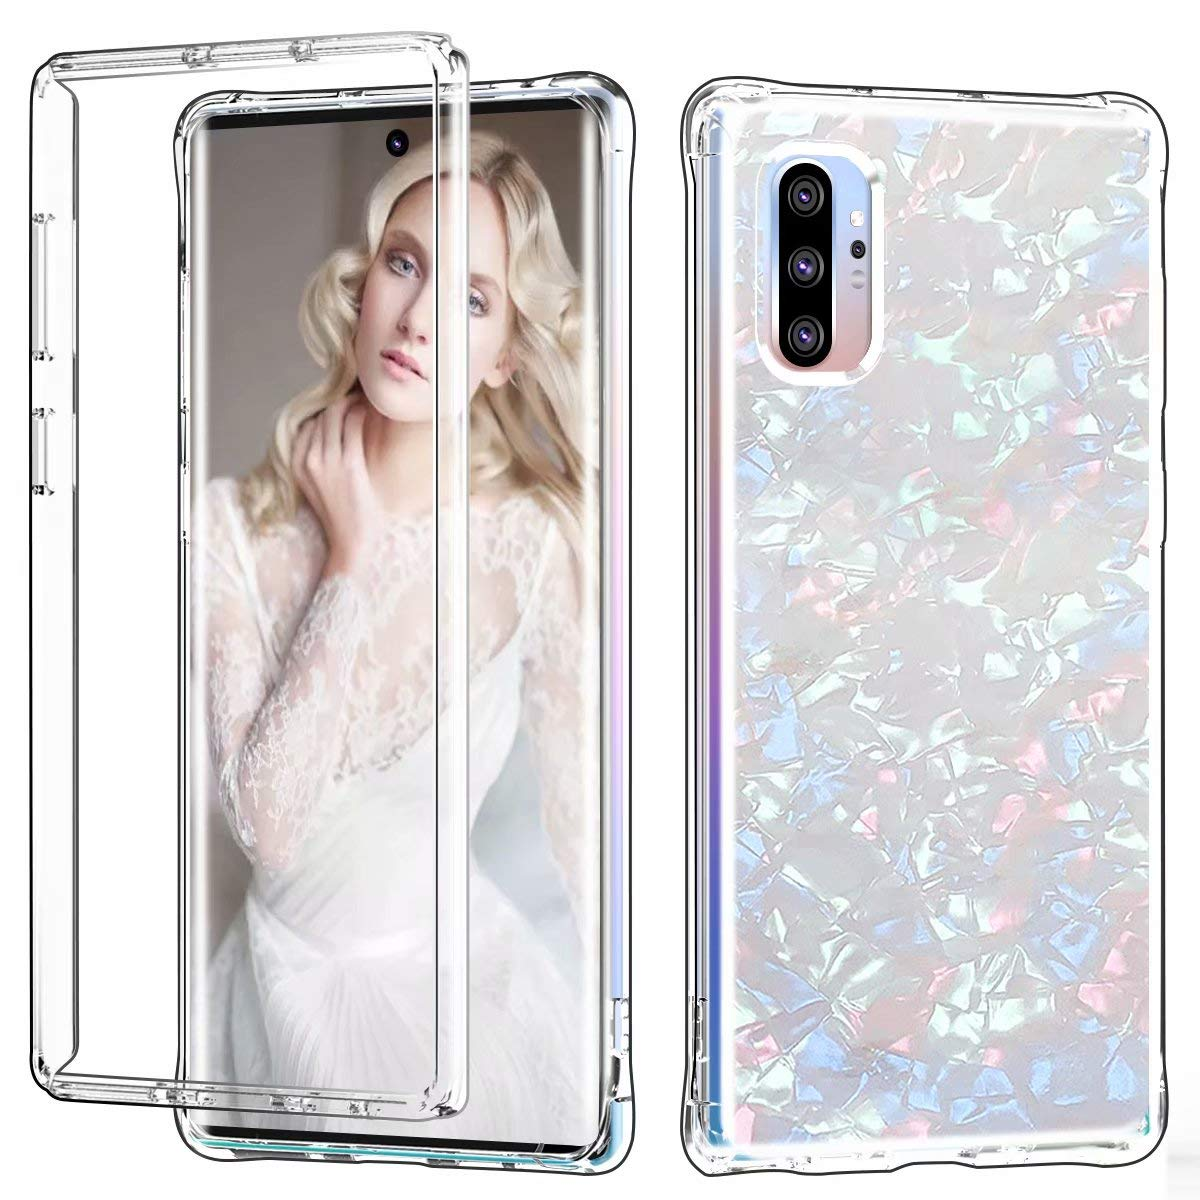 Galaxy Note 10 Plus Case, Ranyi Full Body Protective Crystal Transparent Cover Hybrid Bumper [Supported Wireless Charging] Flexible Resilient TPU Case for Samsung Galaxy Note 10+ Plus (White) by Ranyi